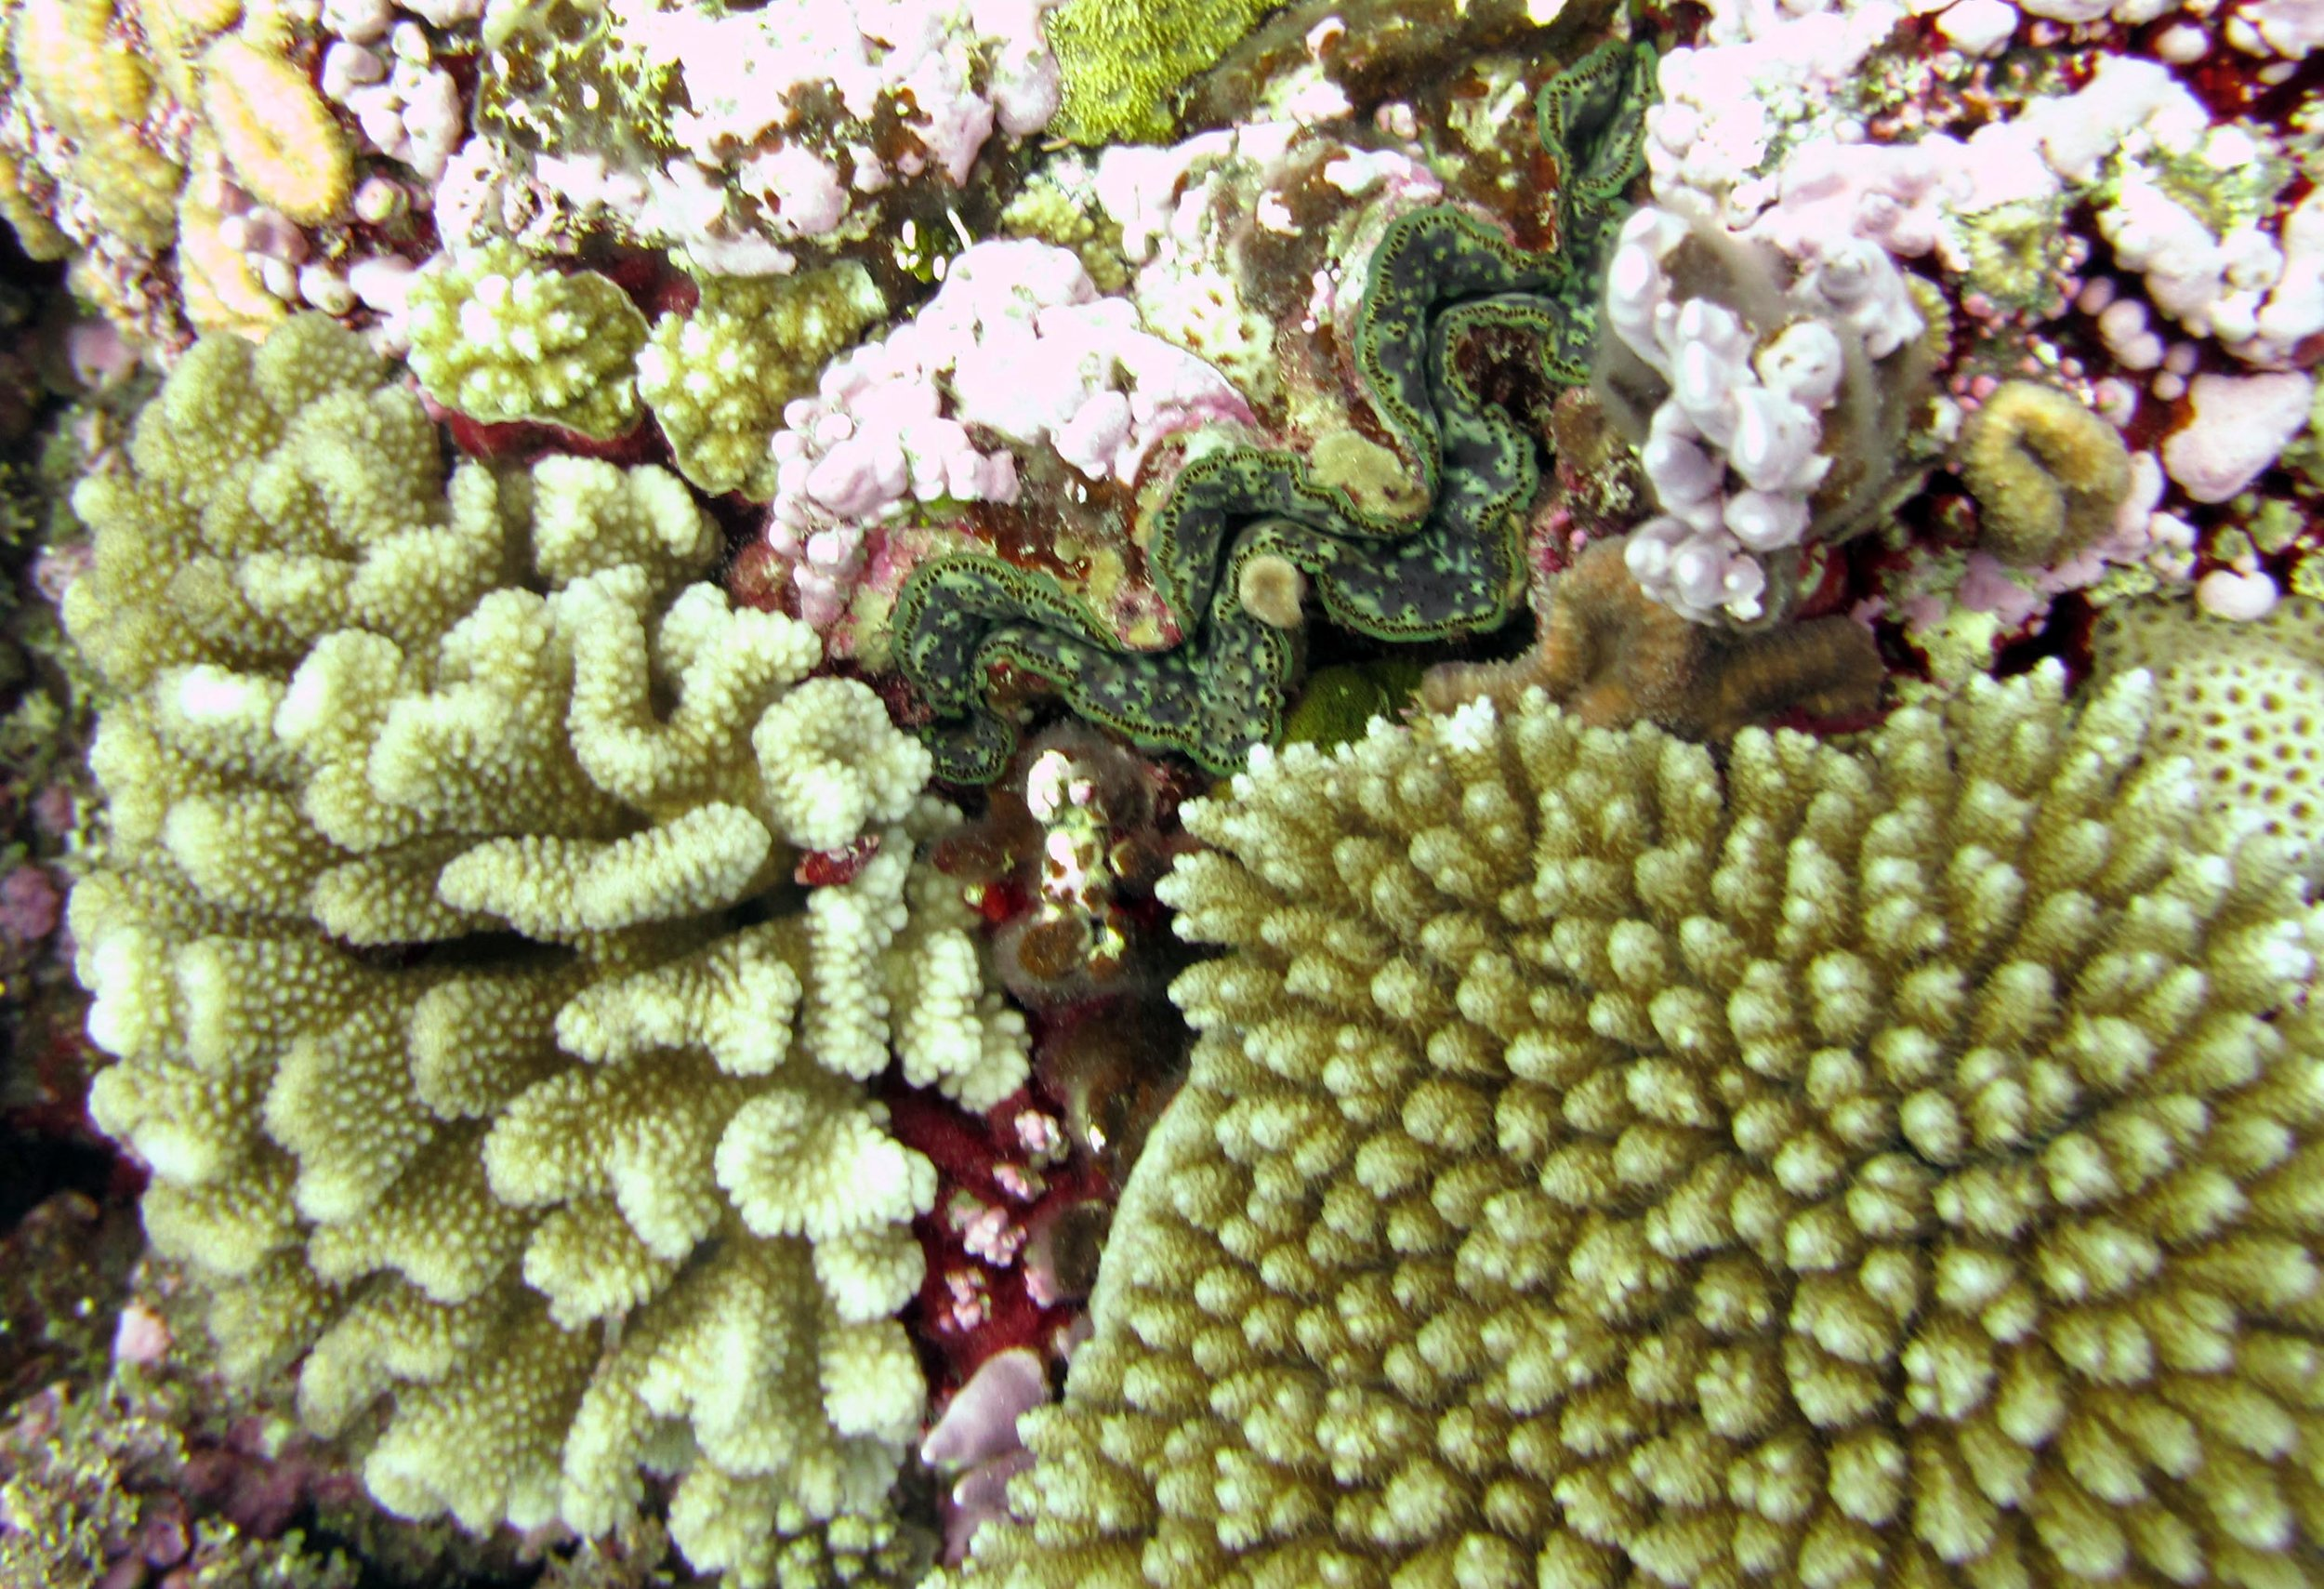 giant clam and corals.jpg